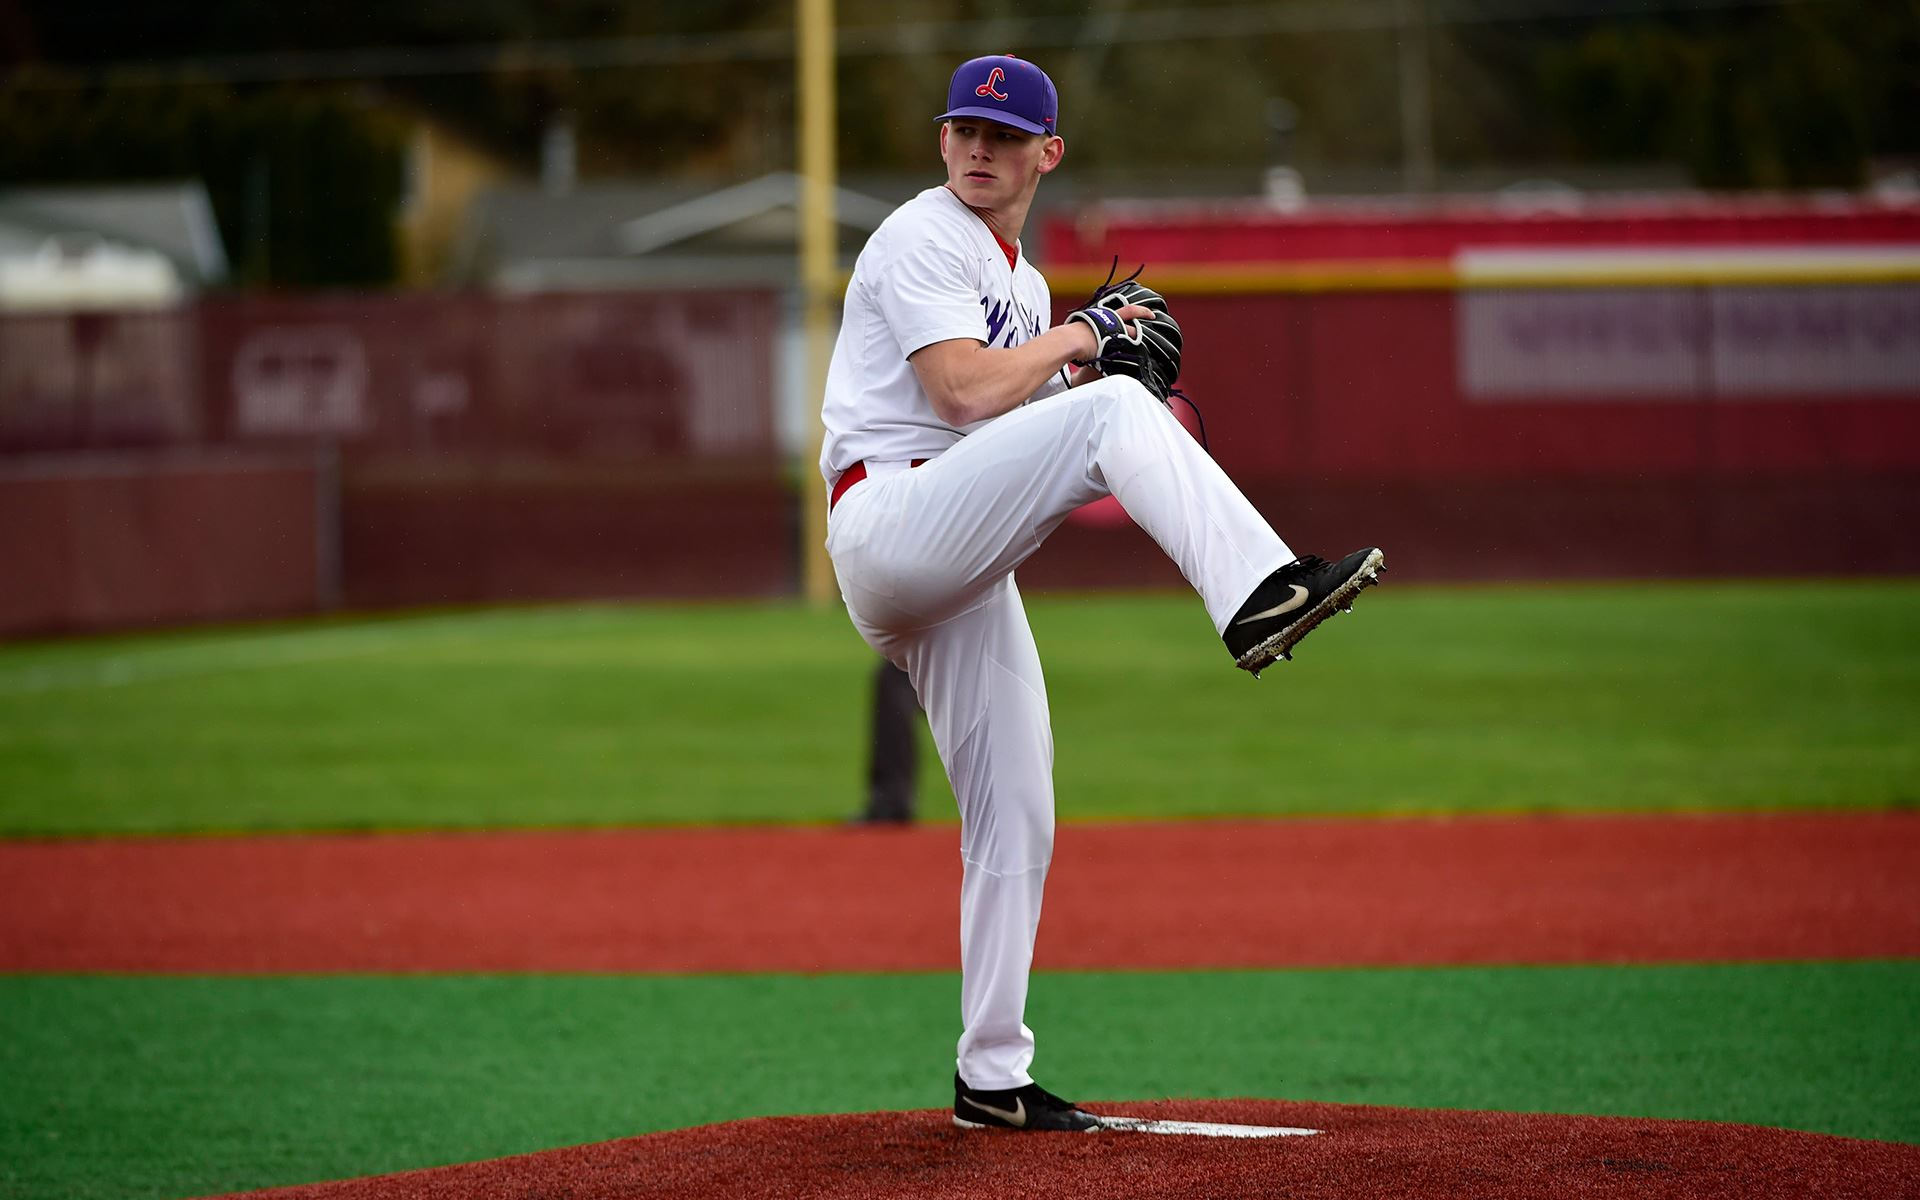 Colton pitching